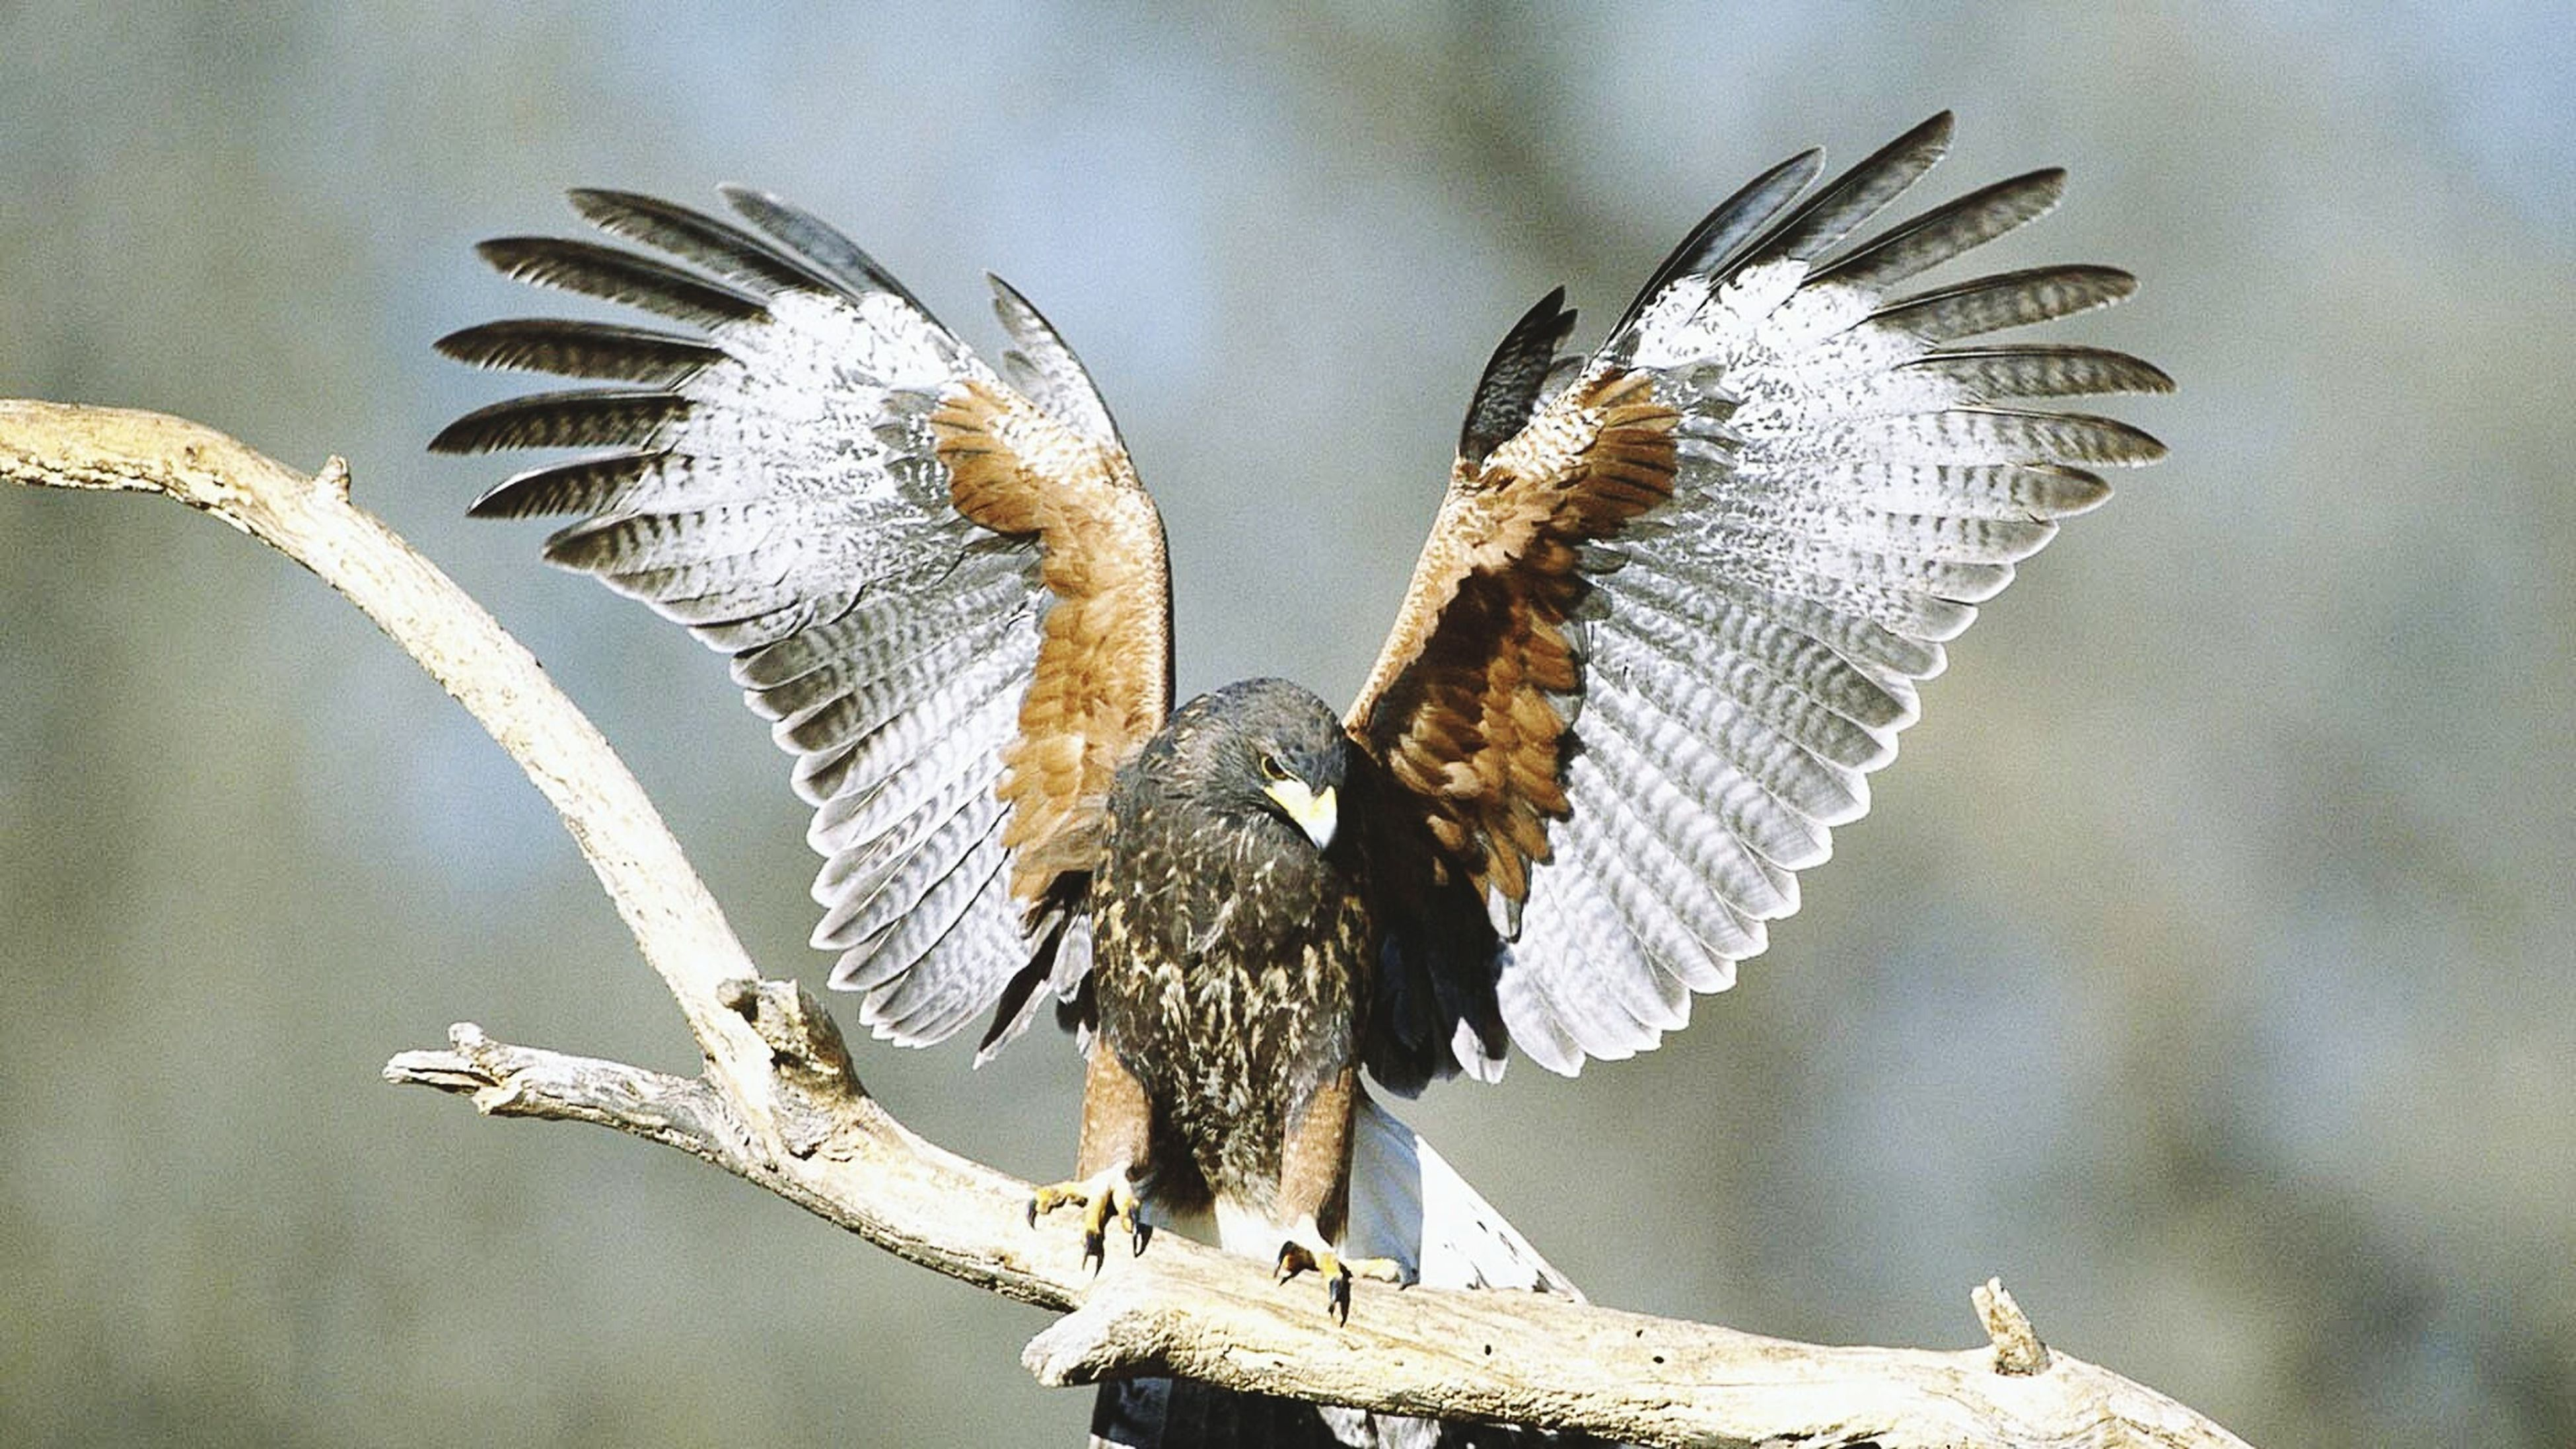 animals in the wild, bird, animal themes, wildlife, spread wings, one animal, flying, focus on foreground, perching, sky, low angle view, close-up, nature, animal wing, day, feather, no people, outdoors, mid-air, beauty in nature